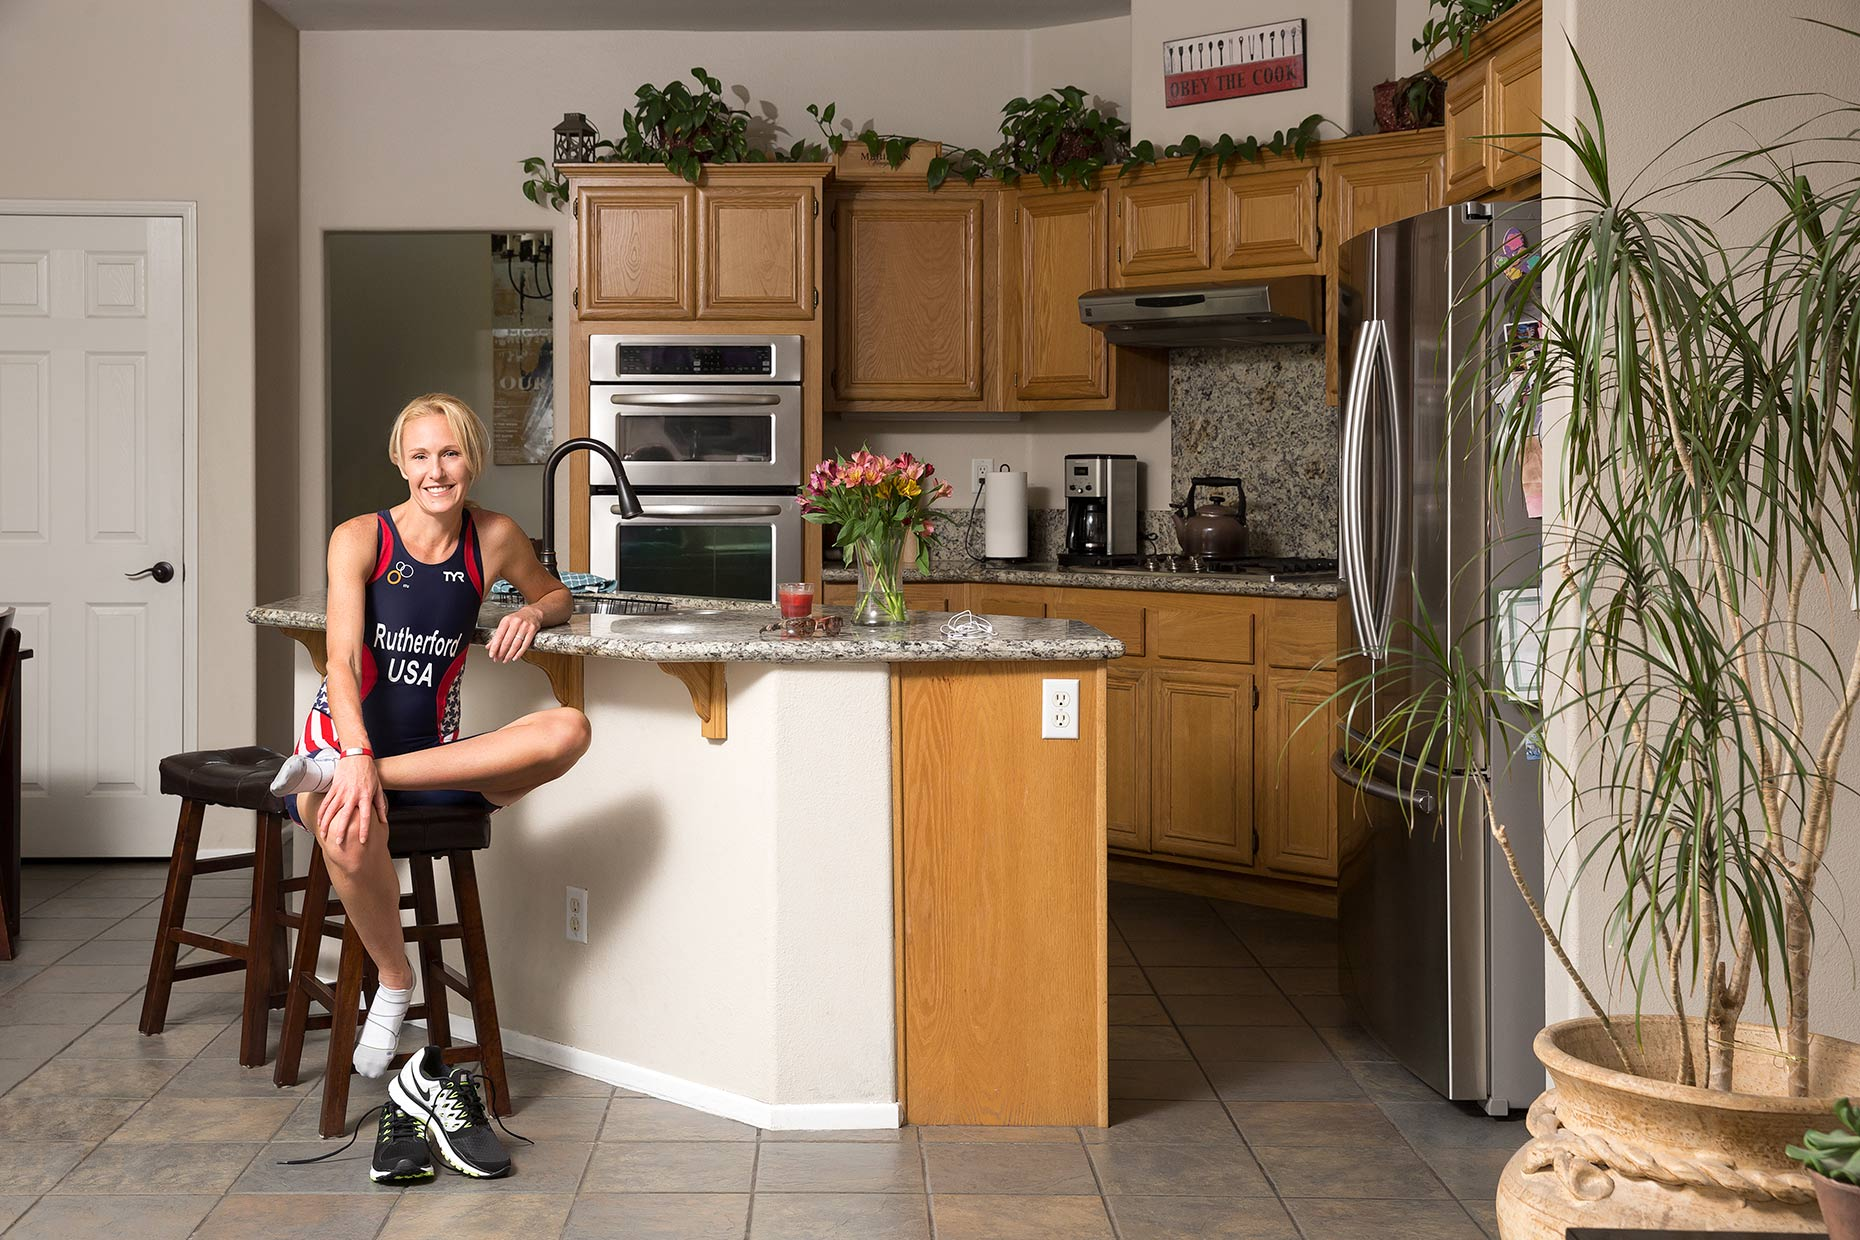 Right Next Door: Jeannie Rutherford, Triathalete, Ambassador, Working Mom